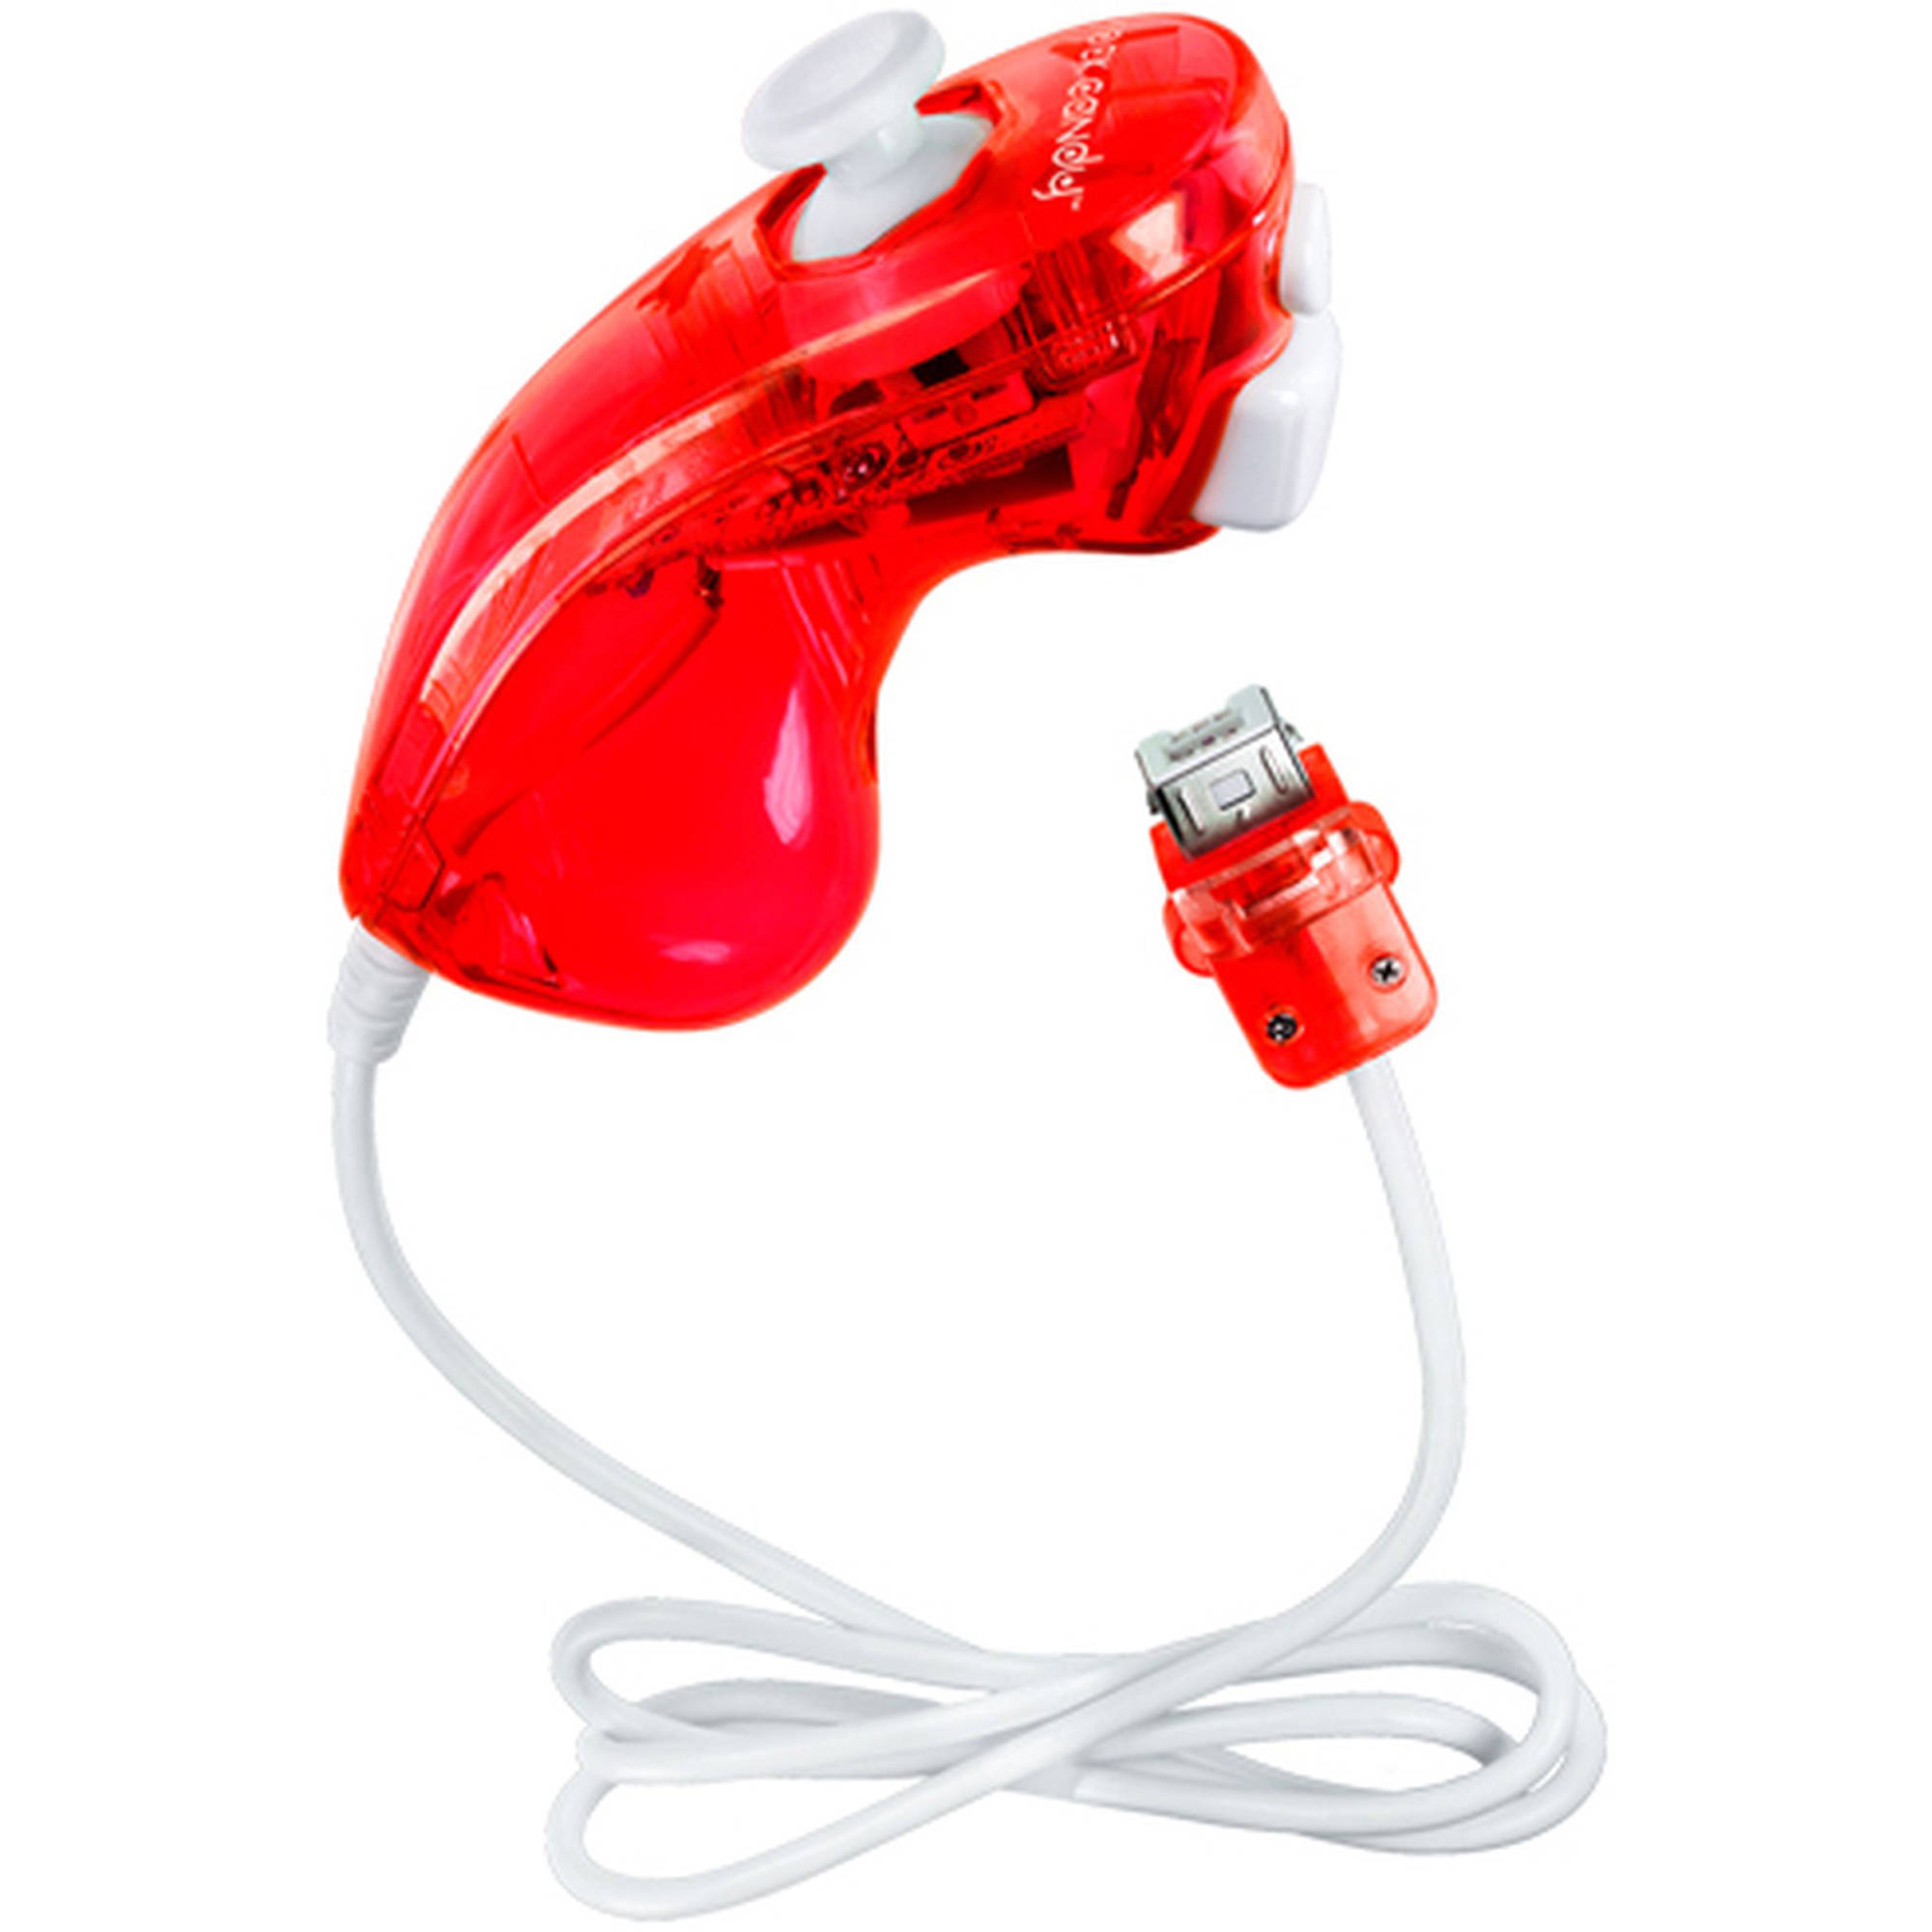 PDP Rock Candy Control Stick for Wii/Wii U, Stormin' Cherry